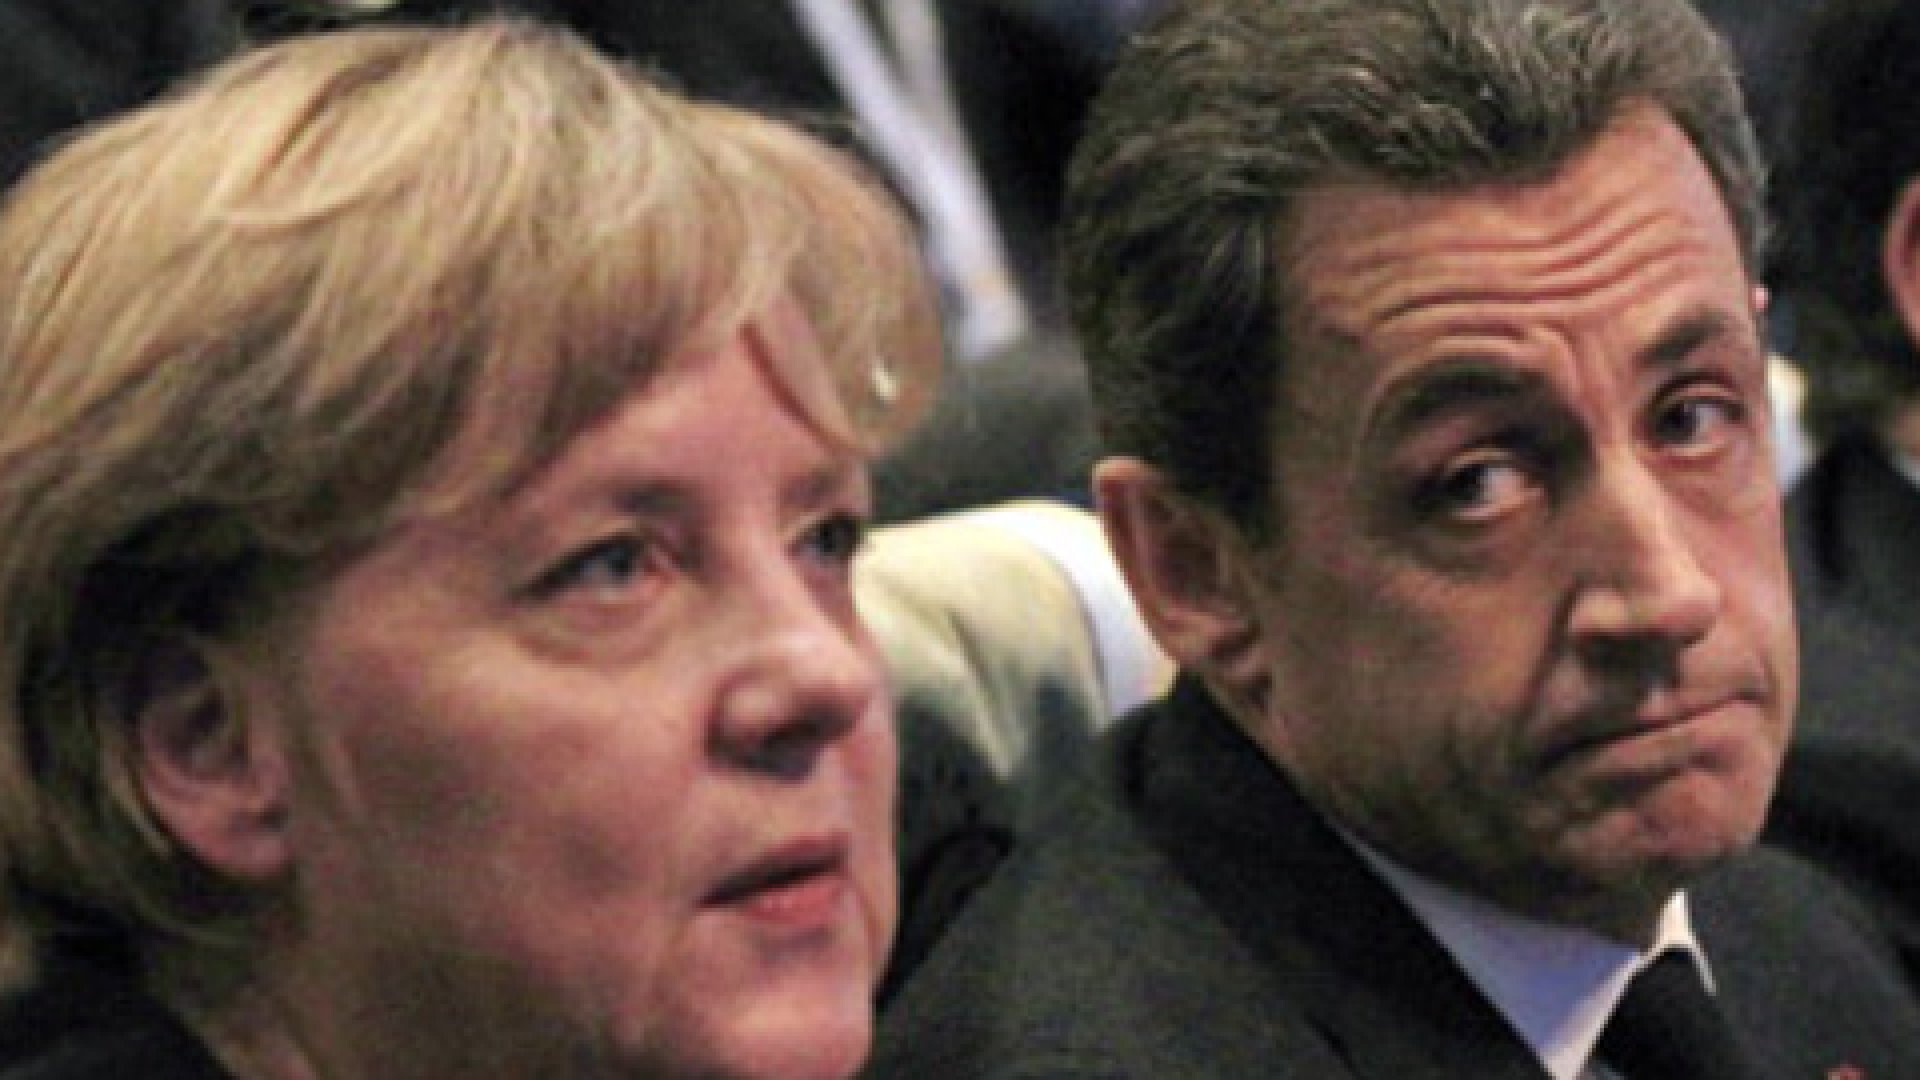 Your business environment will depend a lot on how German chancellor Merkel and French President Sarkozy play their cards in 2012